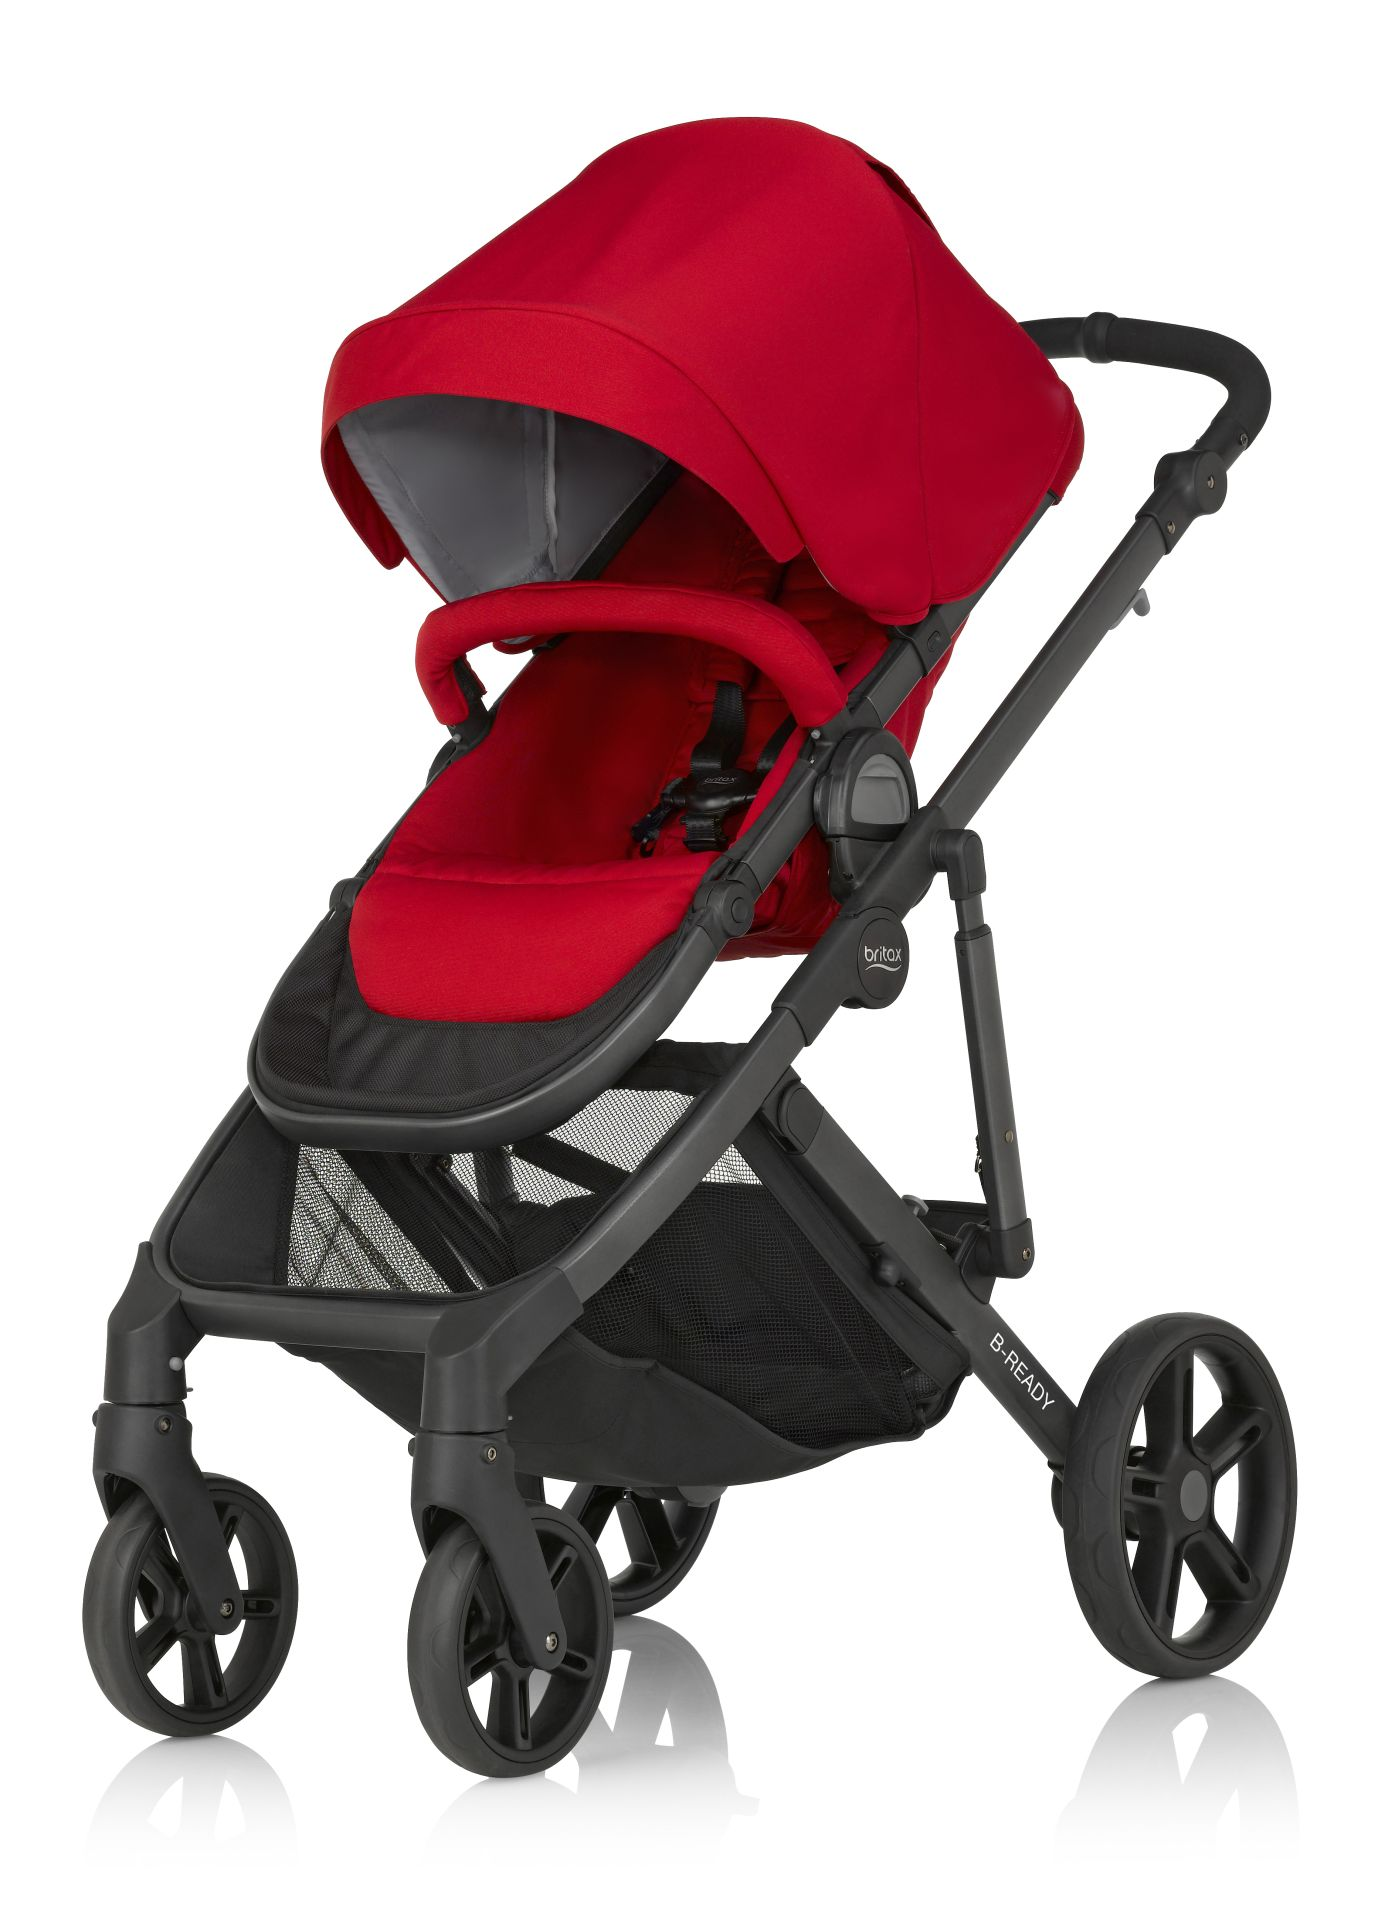 britax r mer b ready 2018 flame red buy at kidsroom strollers. Black Bedroom Furniture Sets. Home Design Ideas